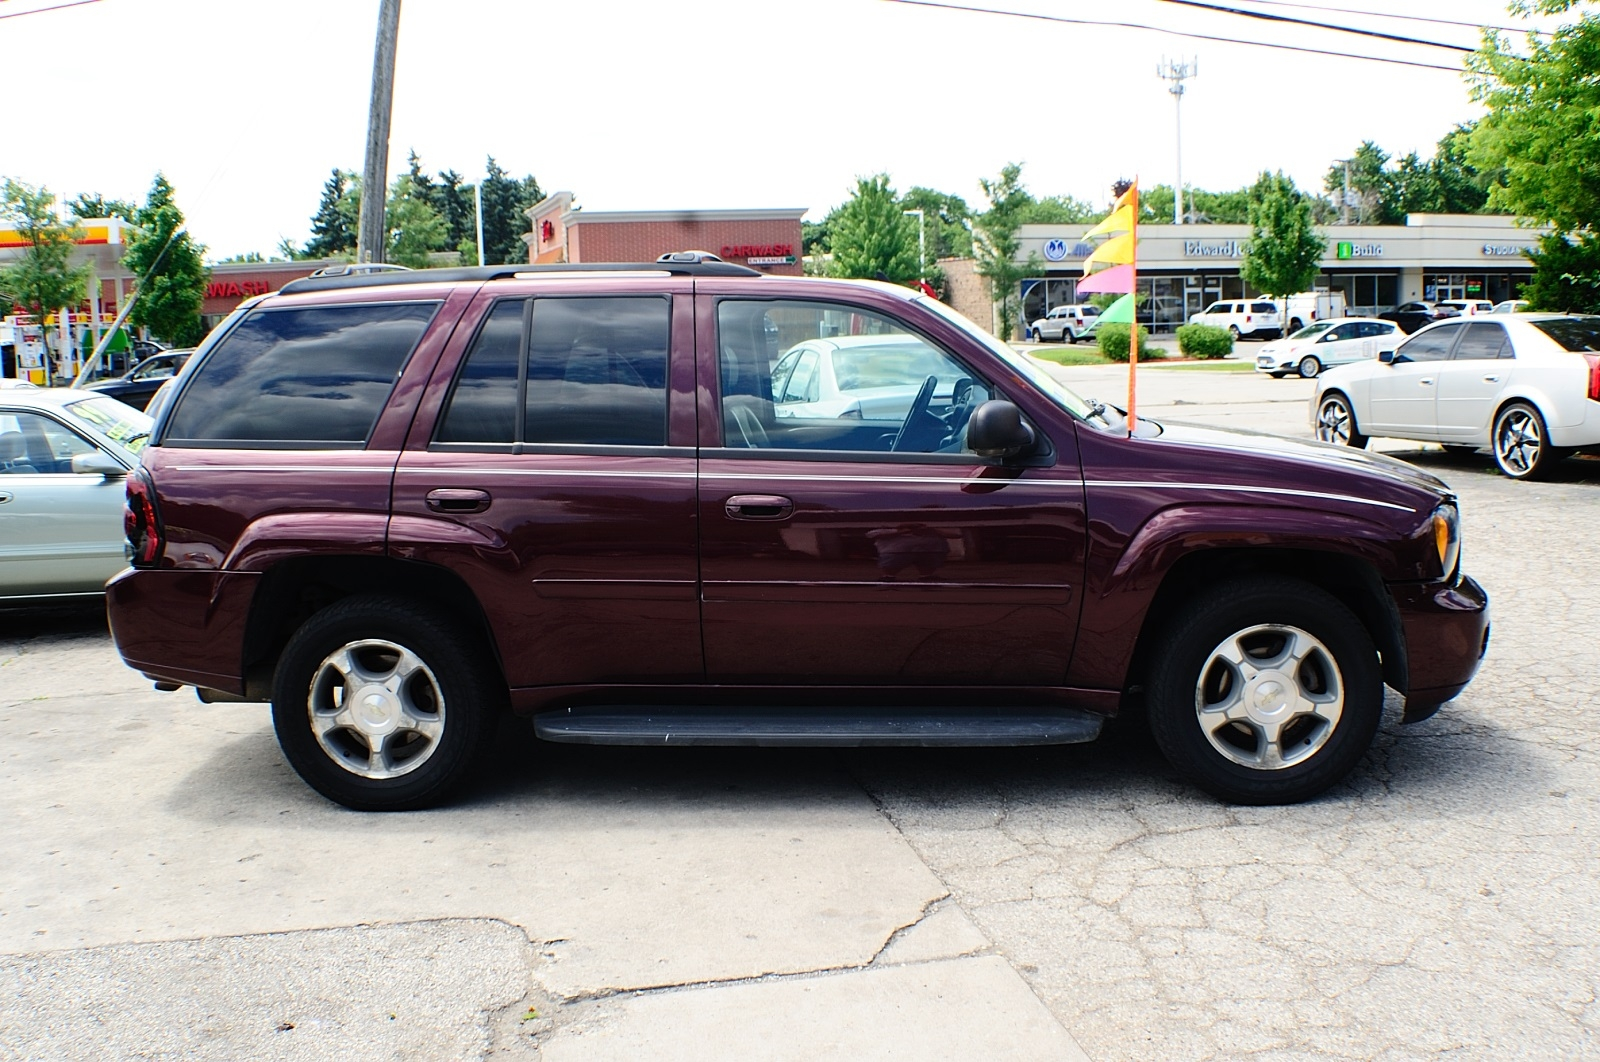 2006 Chevrolet Trailblazer LT Burgundy Used SUV Sale Downers Grove Carpentersville Cicero Oak Park